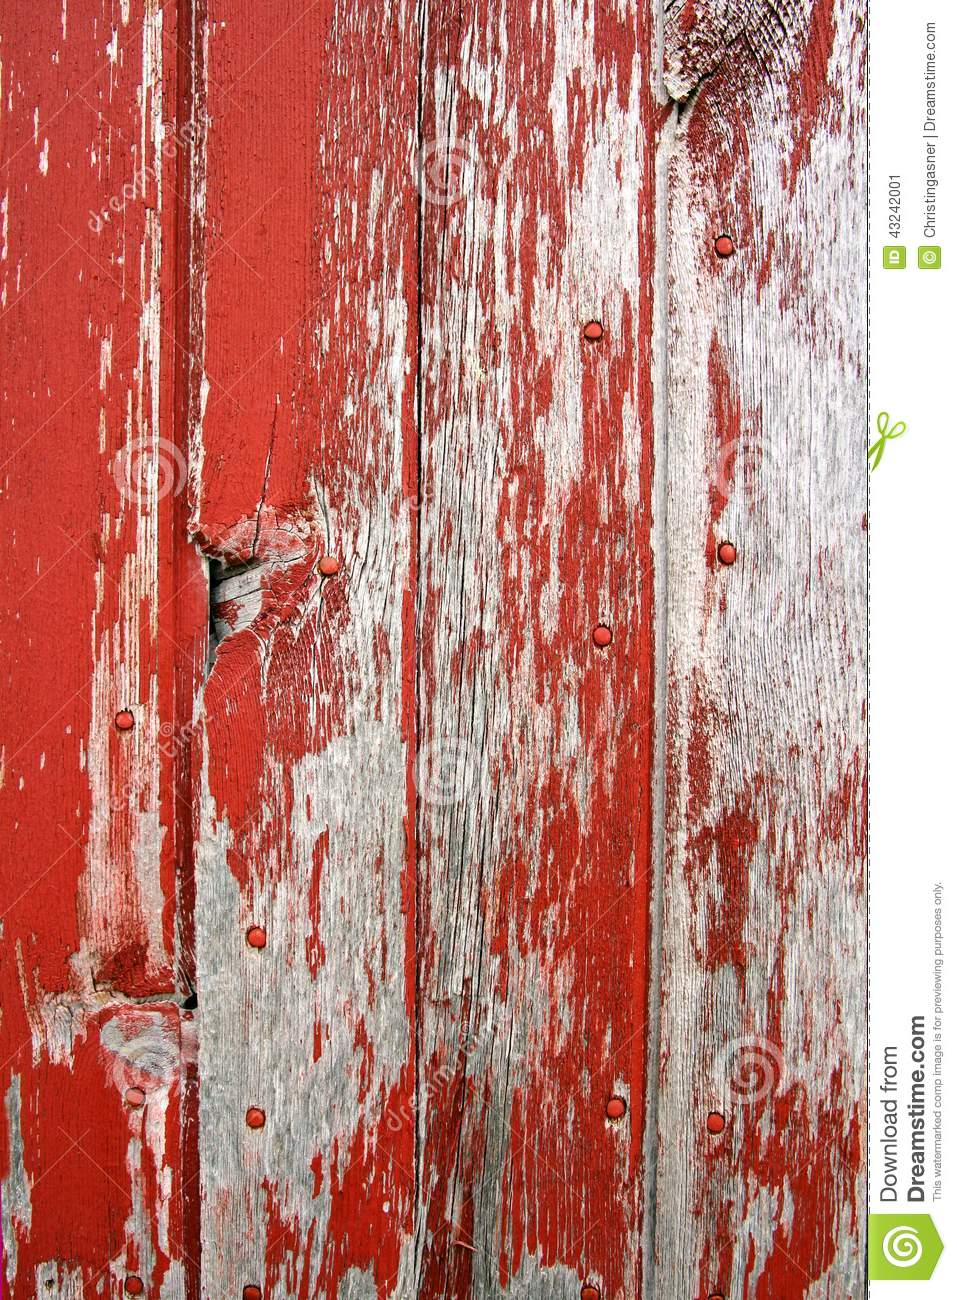 Barn Wood Background red rustic barn wood background stock photo - image: 43242001